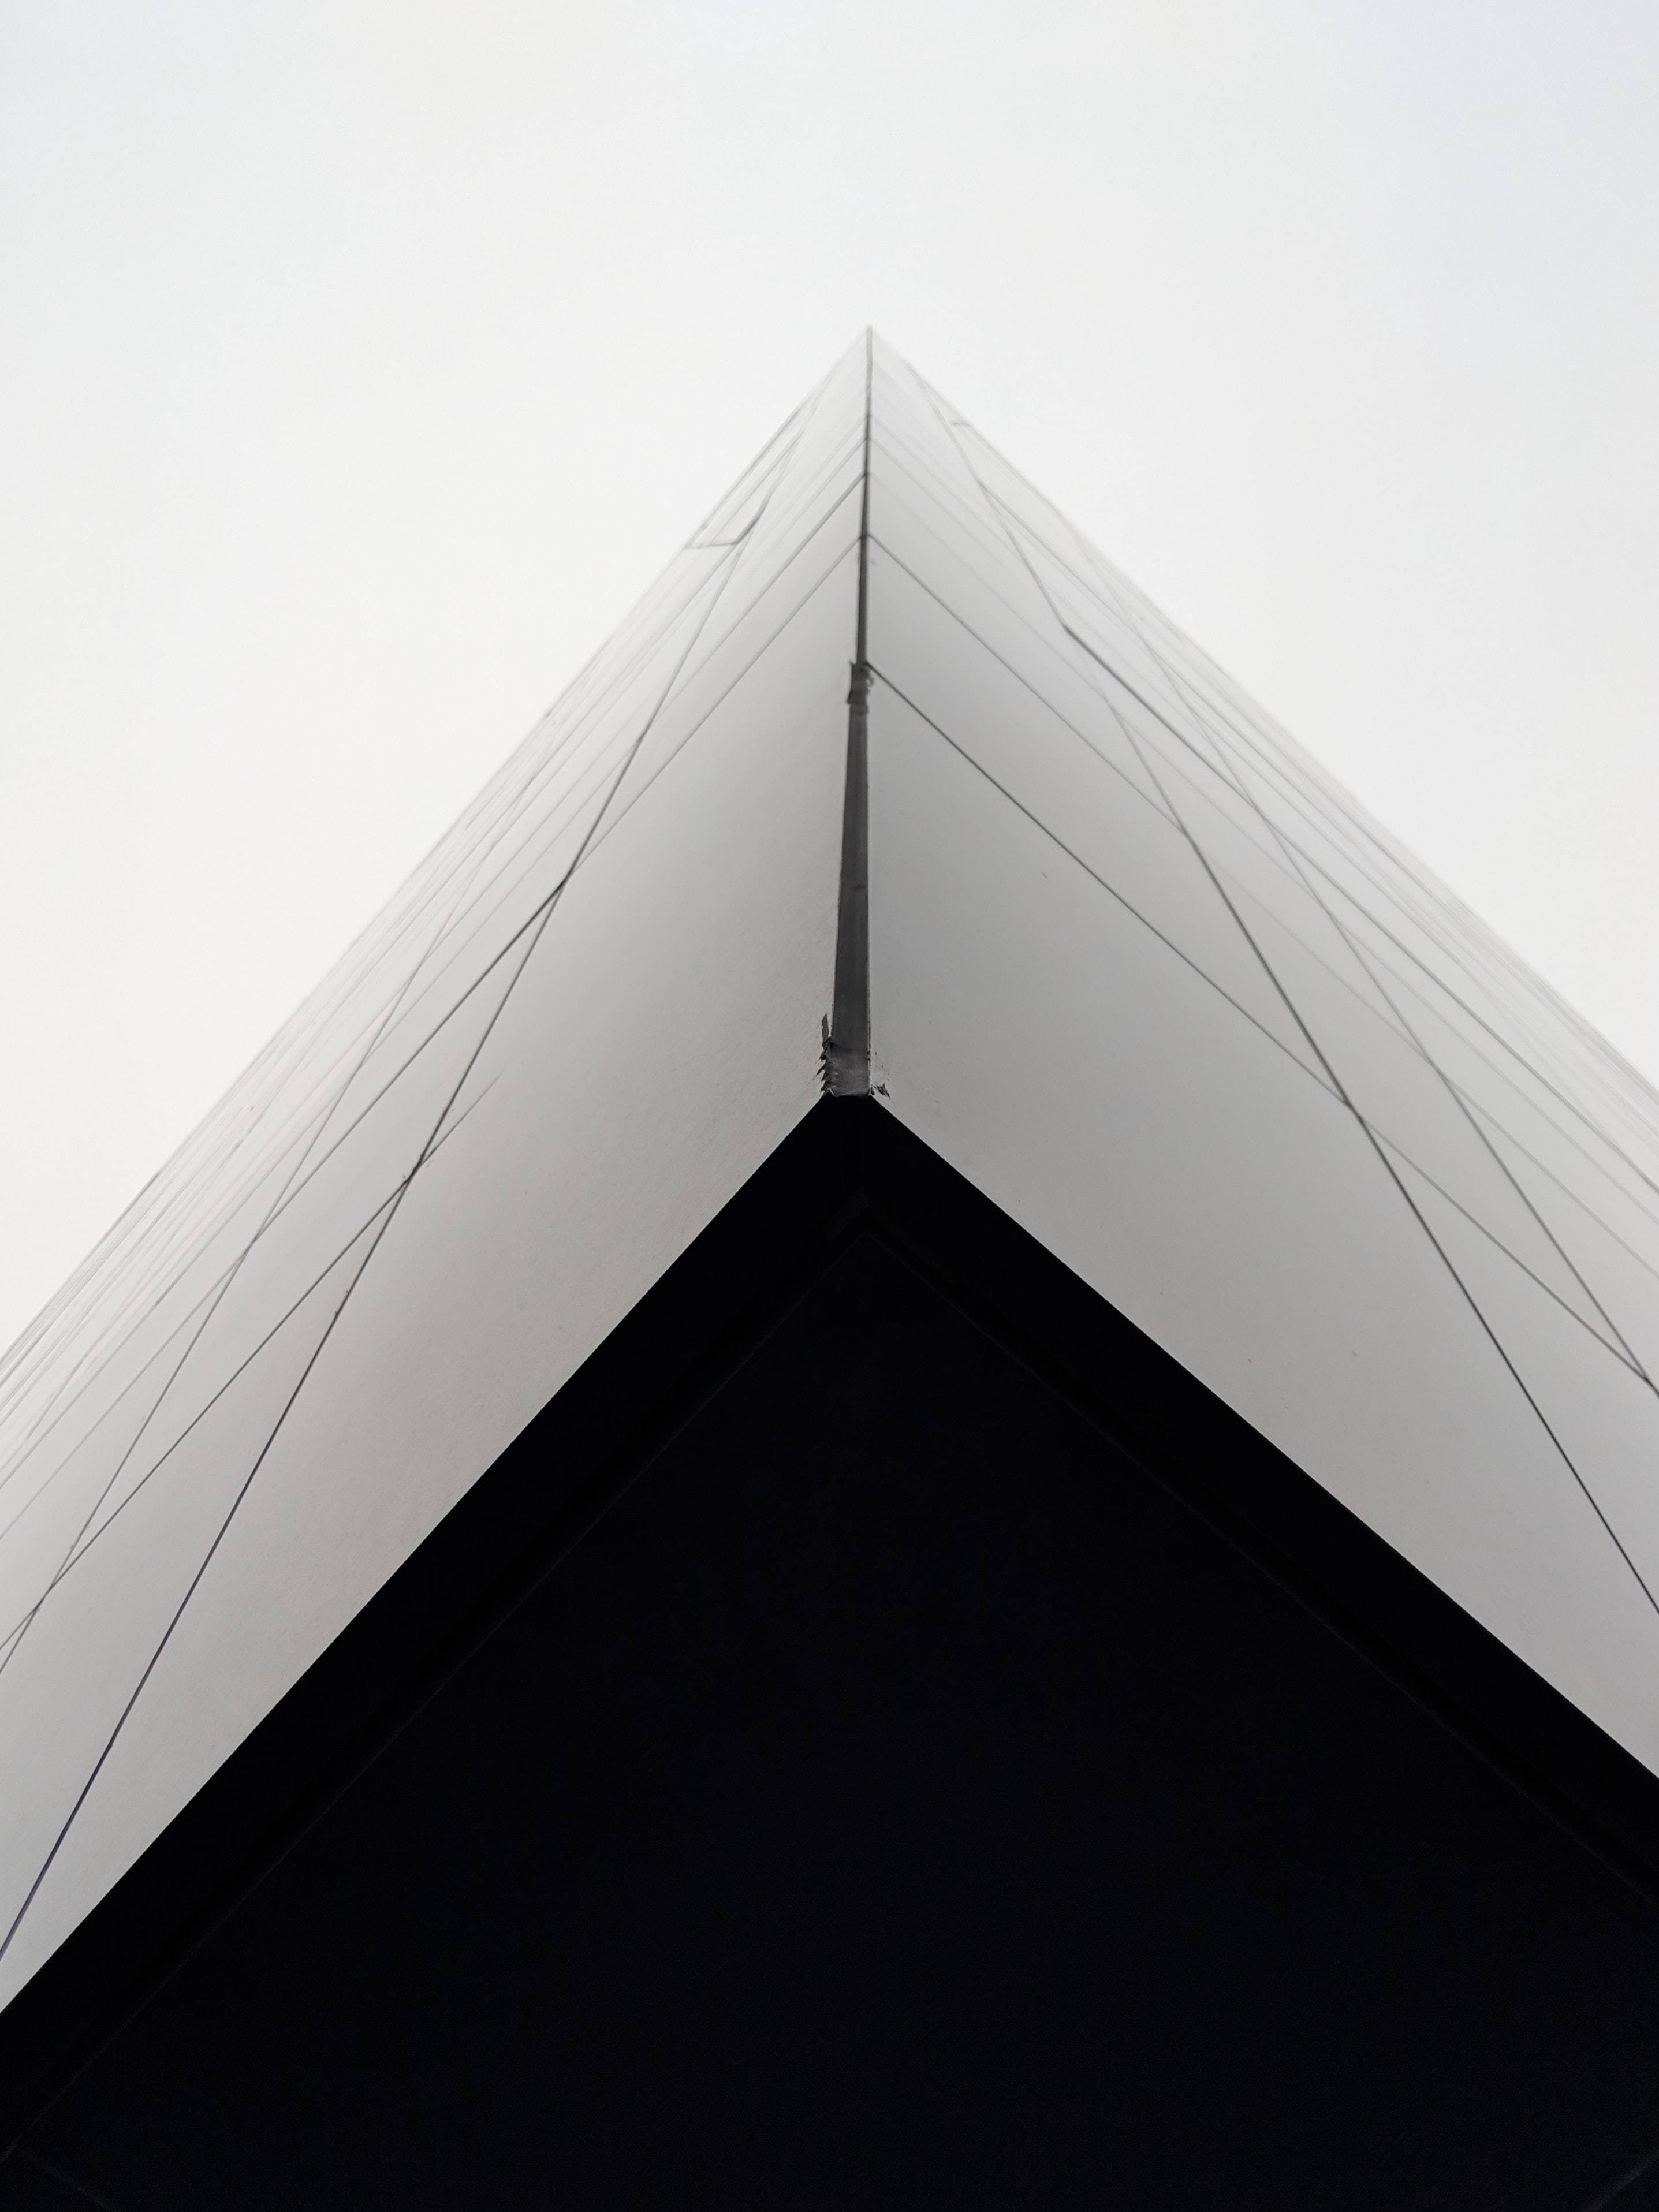 low angle photography of glass curtain building